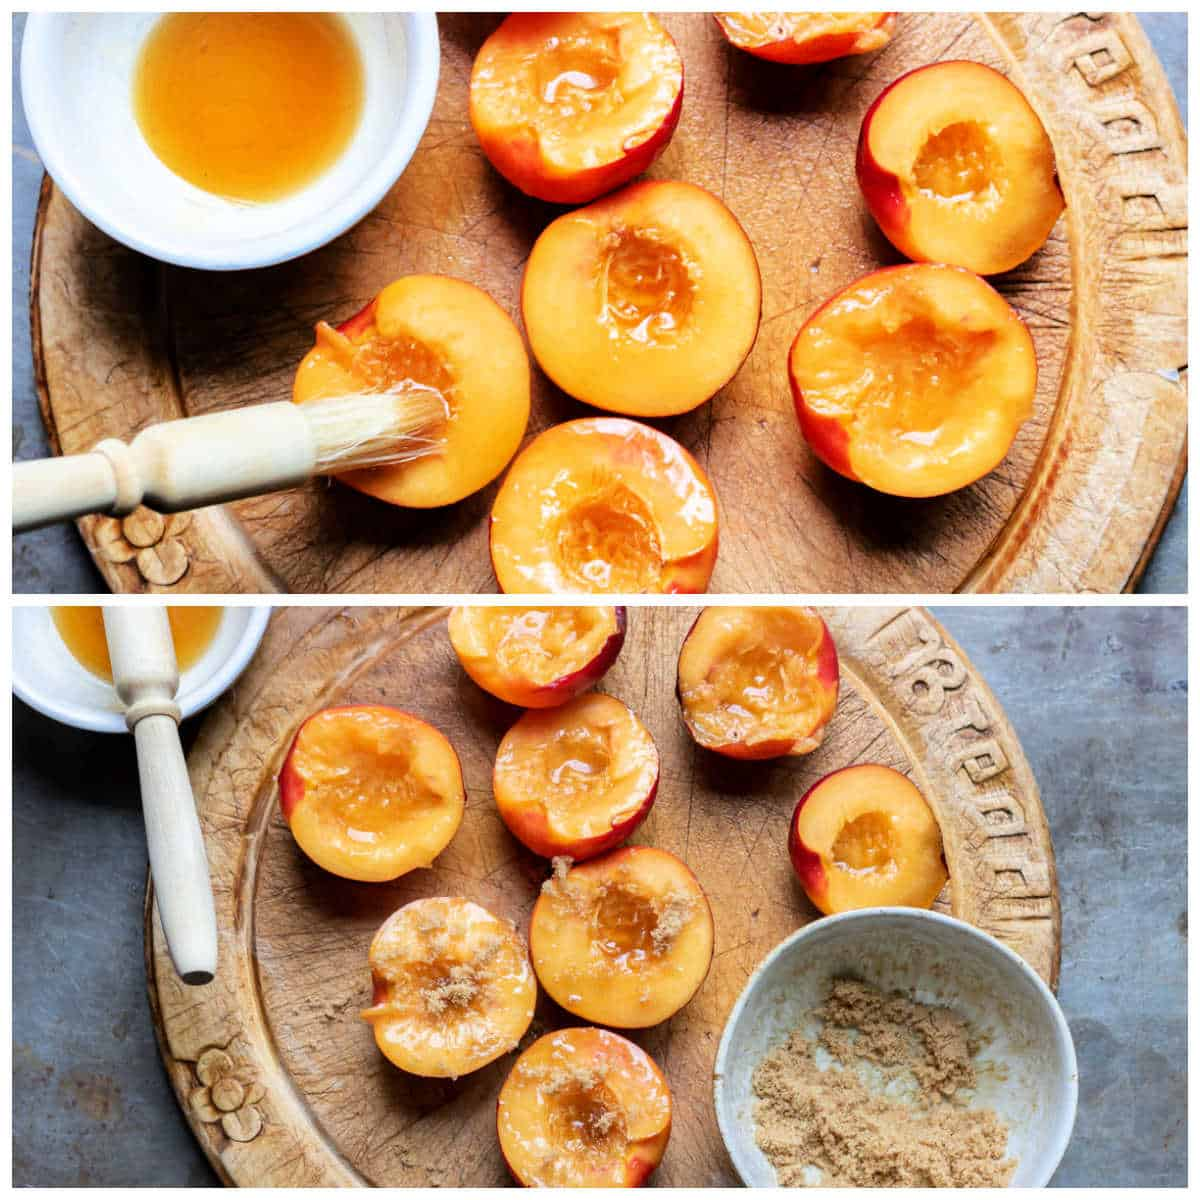 Brushing cut nectarines with syrup, and sprinkling with brown sugar.